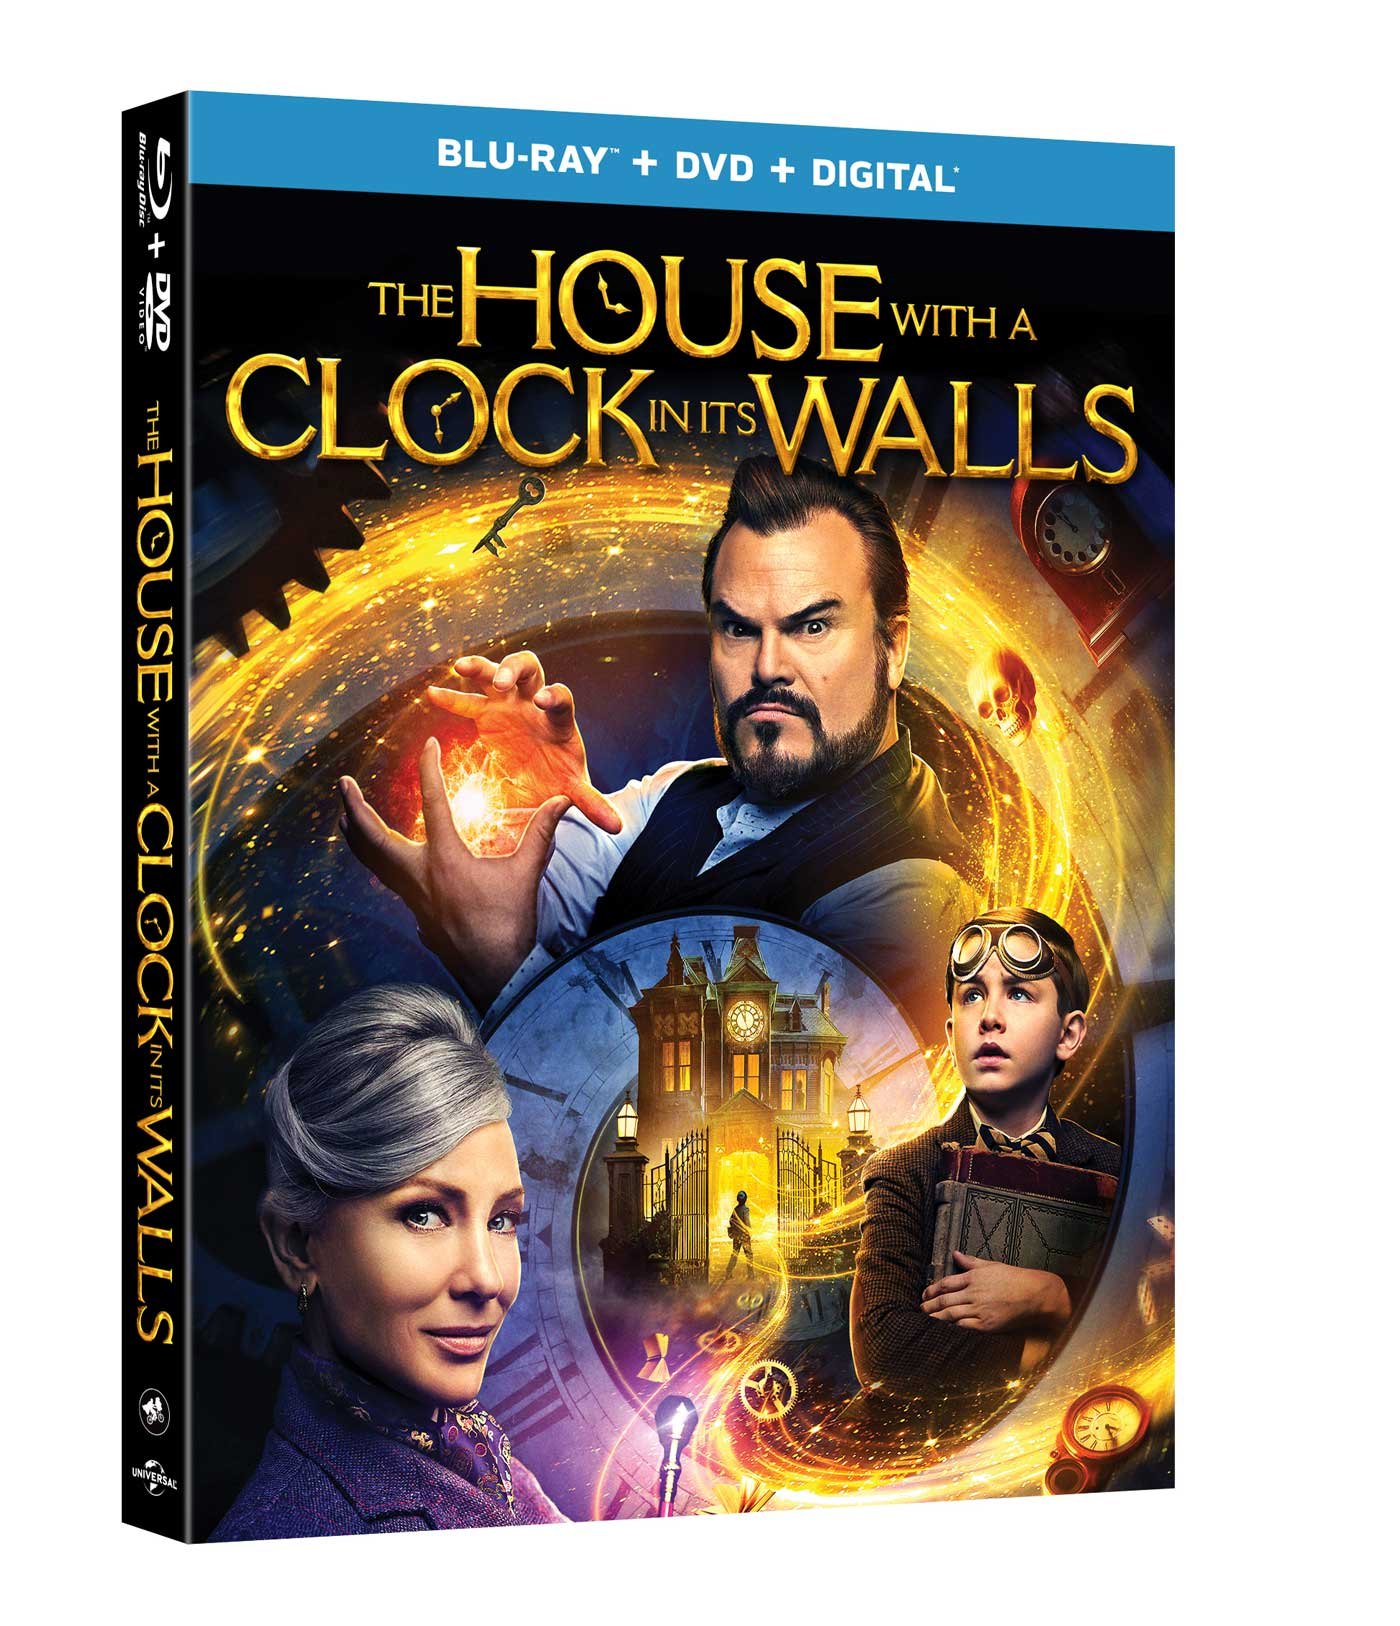 The House With a Clock in its Walls on Blu-ray